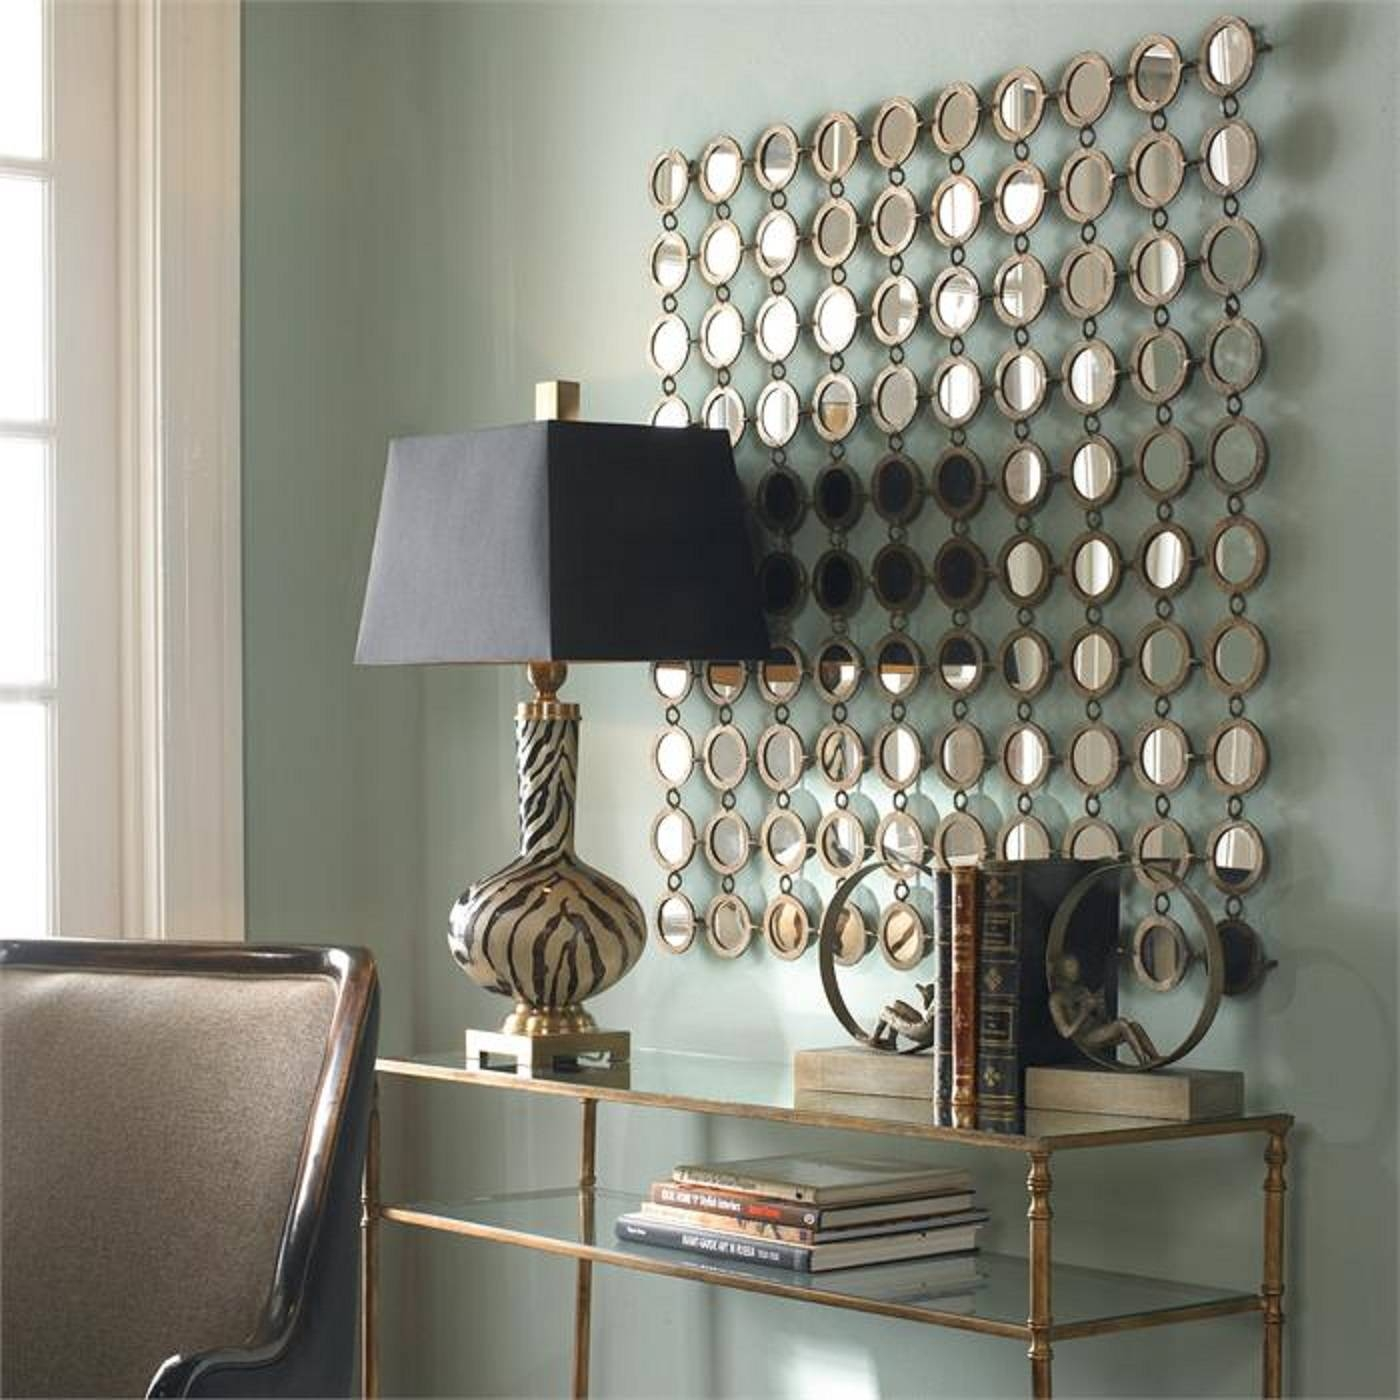 Metal Mirror Wall Decor | Jeffsbakery Basement & Mattress with regard to Champagne Wall Mirrors (Image 18 of 25)